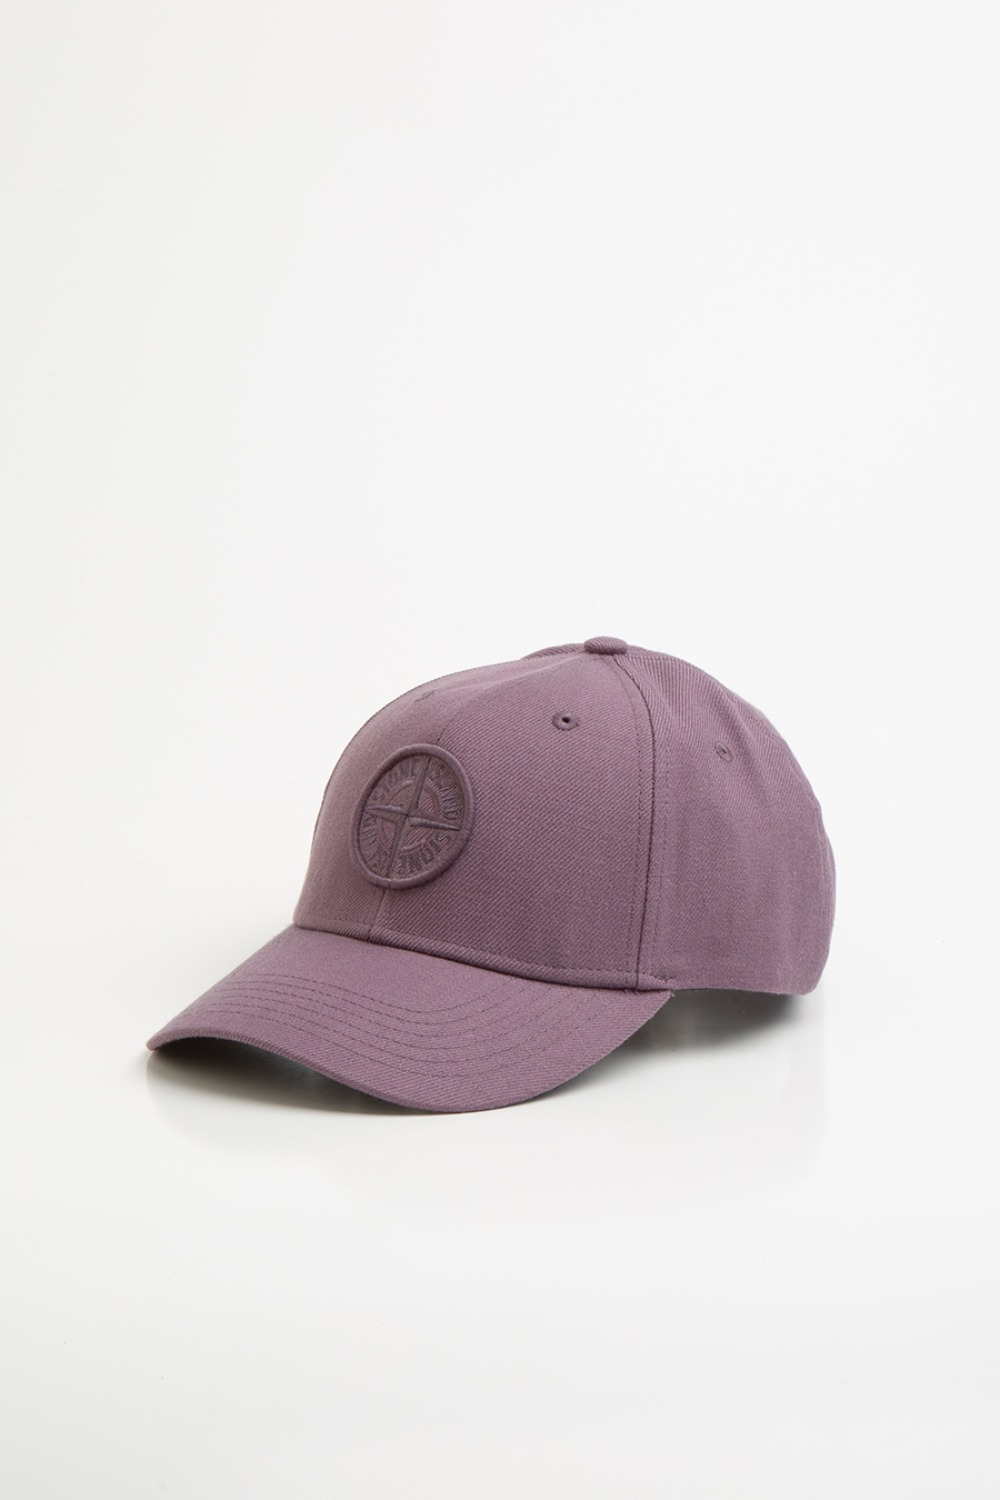 COTTON REP SIX-PANEL CAP PINK